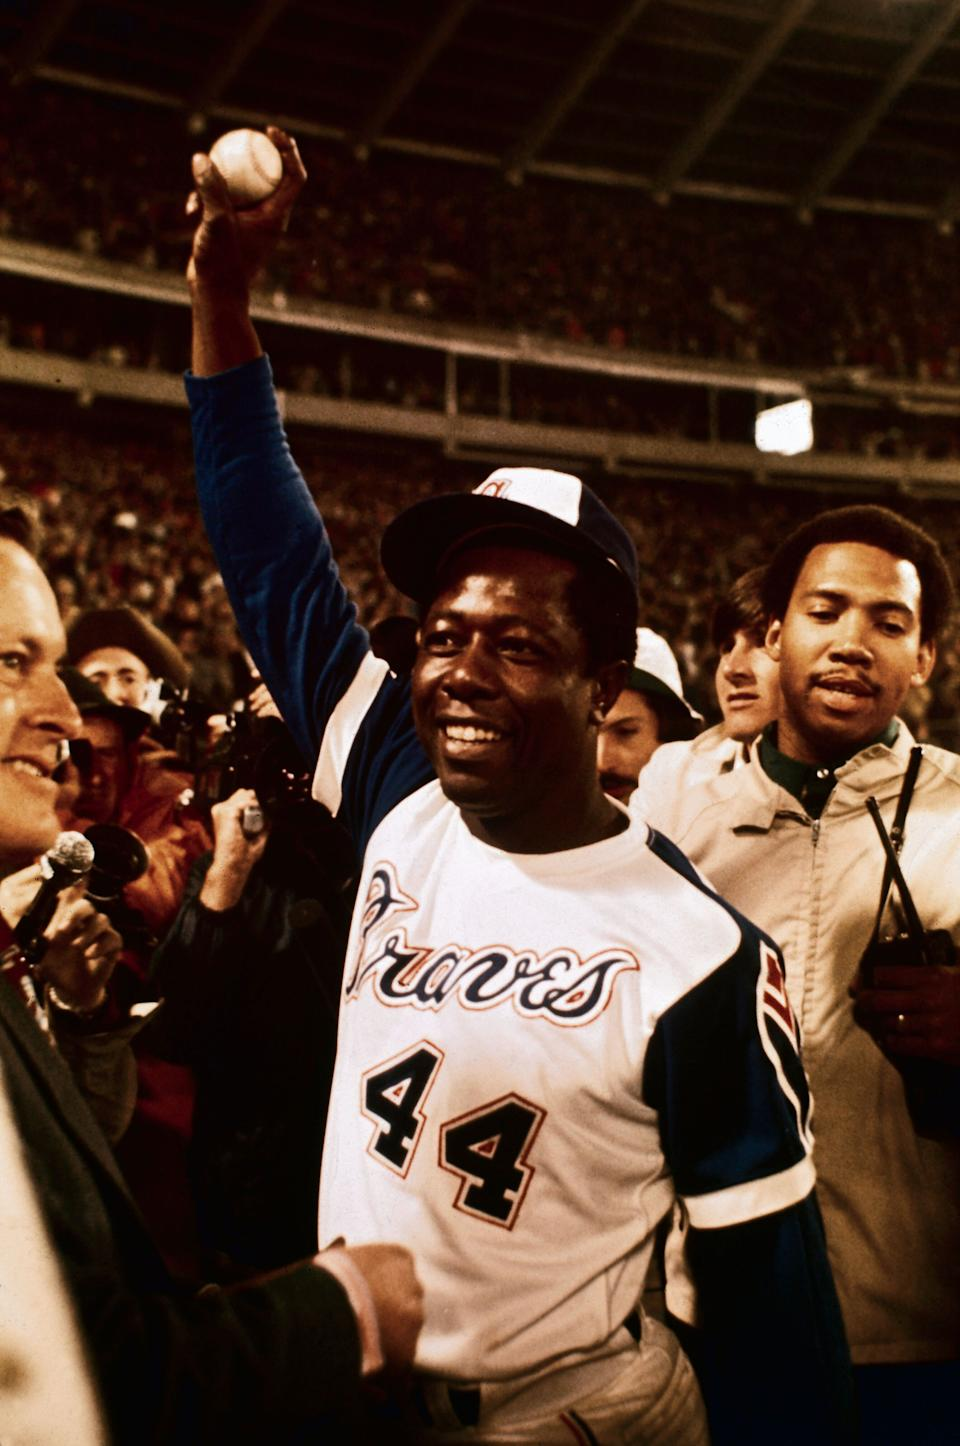 Hank Aaron holds up the ball here that broke Babe Ruth's home run record after he connected for his 715th career homer. With Aaron is his personal bodyguard, Calvin Wardlow. (Photo: Bettmann via Getty Images)